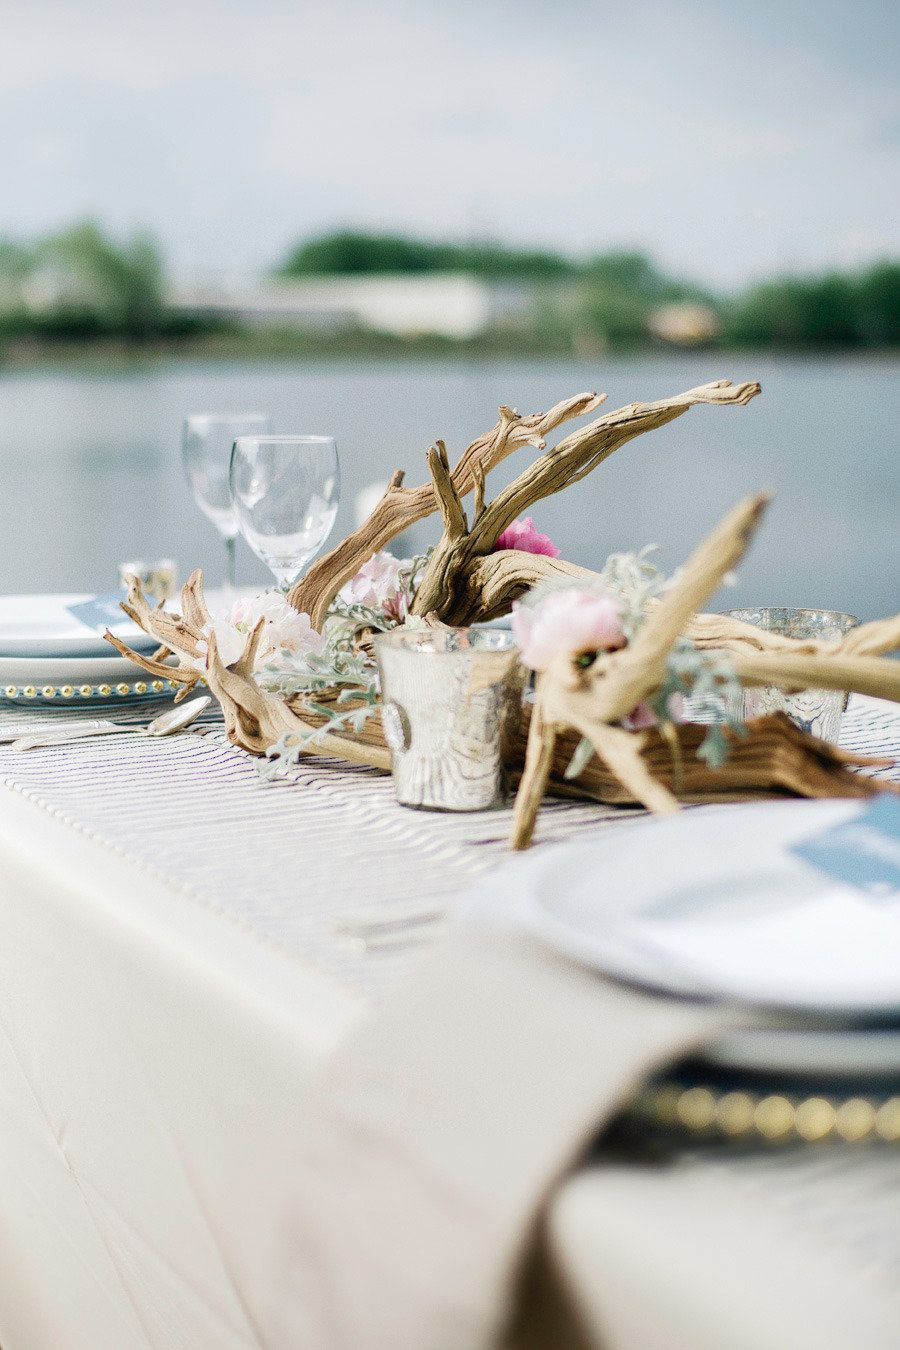 Nautical-Inspired Photo Shoot from Jody Savage Photography ...